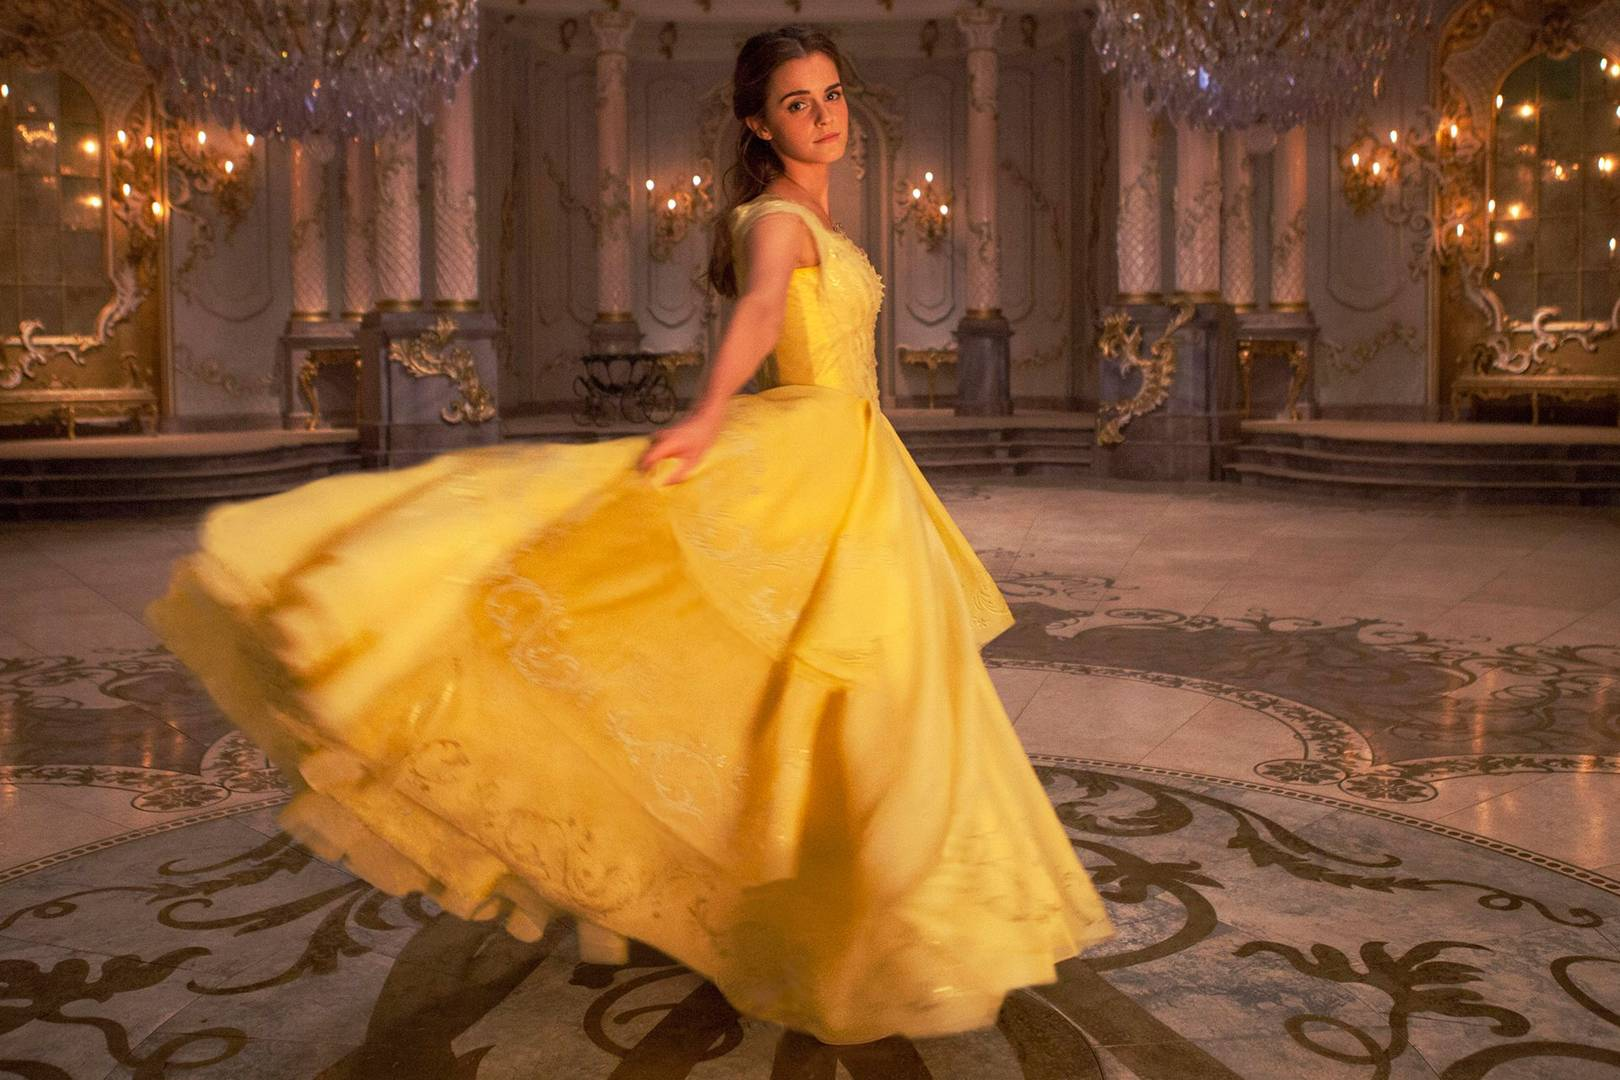 f039b027e8b Emma Watson on Belle s yellow dress in Beauty and The Beast   how it felt  to wear it